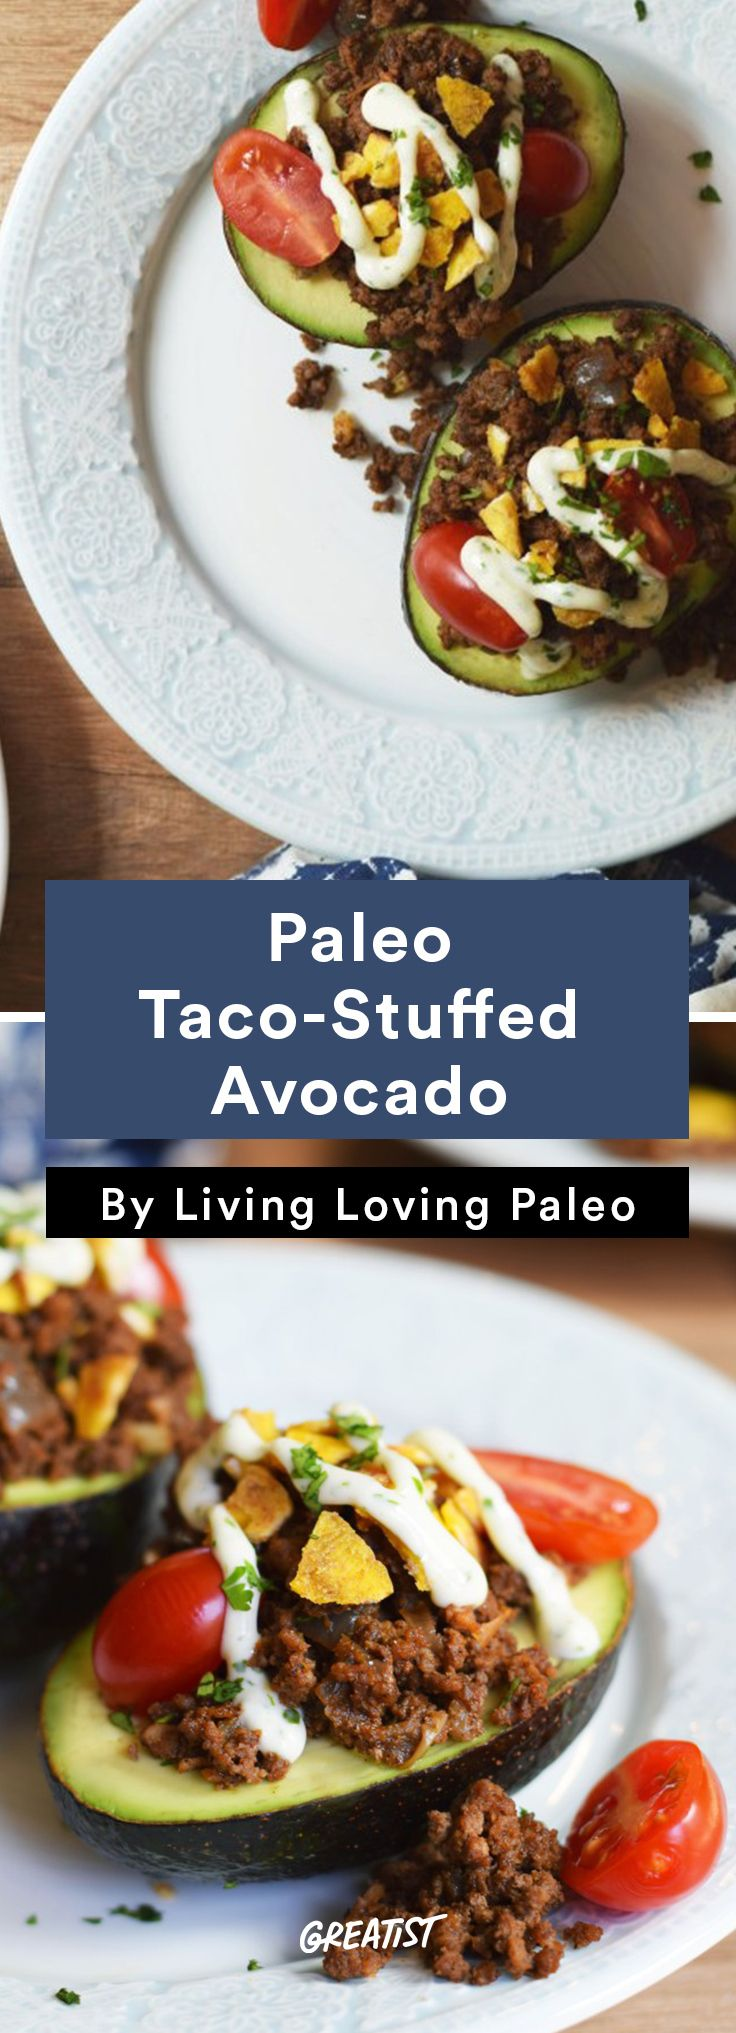 Why eat a plain avocado when you can have this delicious taco-stuffed avo? It's a great paleo-friendly, eat-anywhere snack.